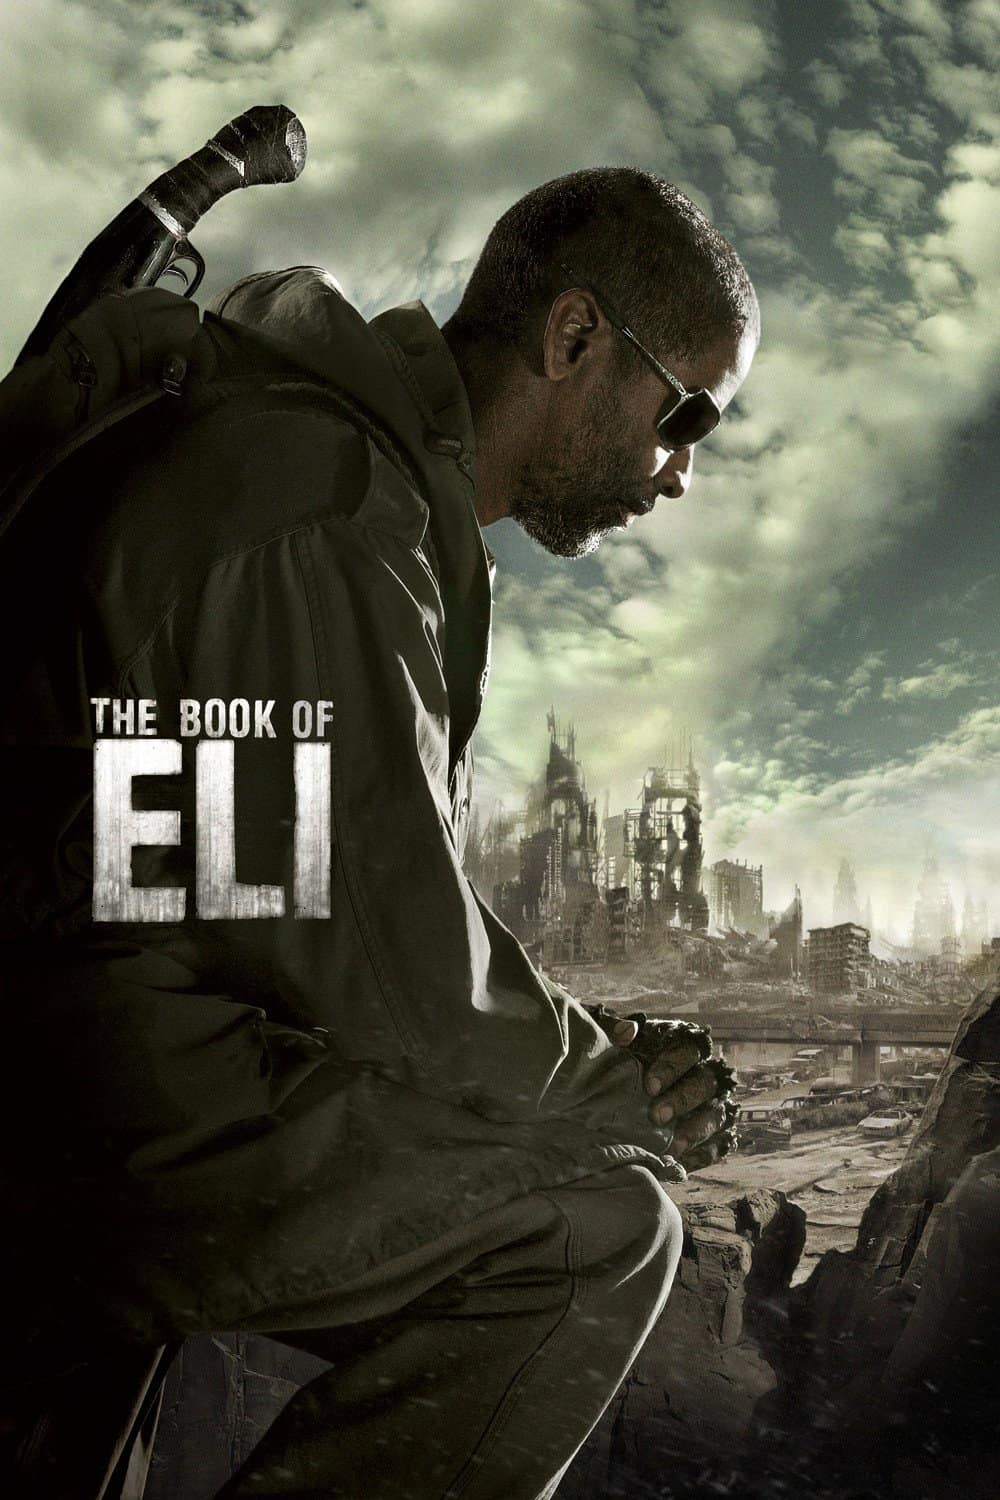 The Book of Eli, 2010